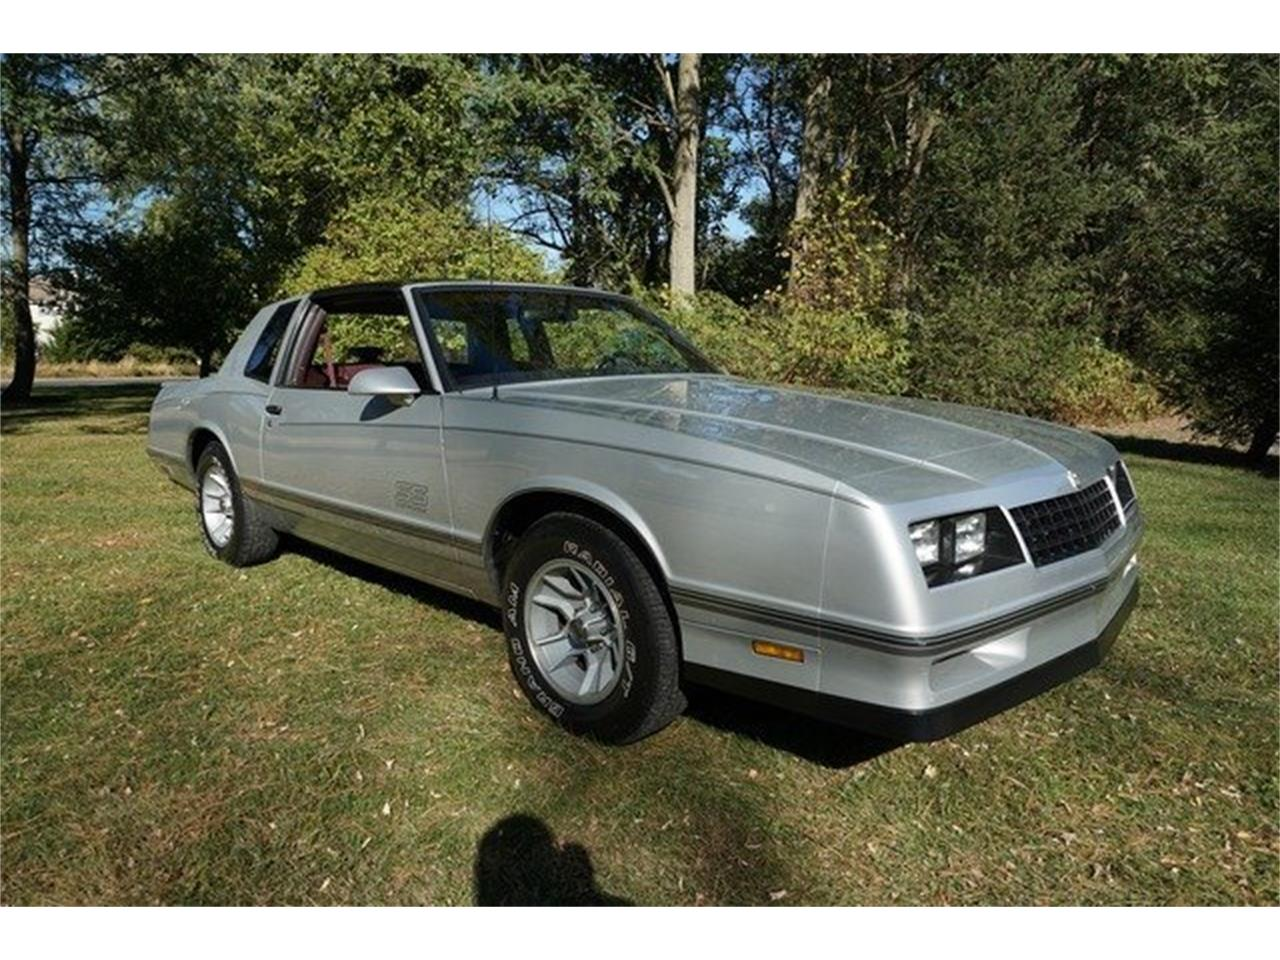 For Sale: 1987 Chevrolet Monte Carlo SS in Monroe, New Jersey